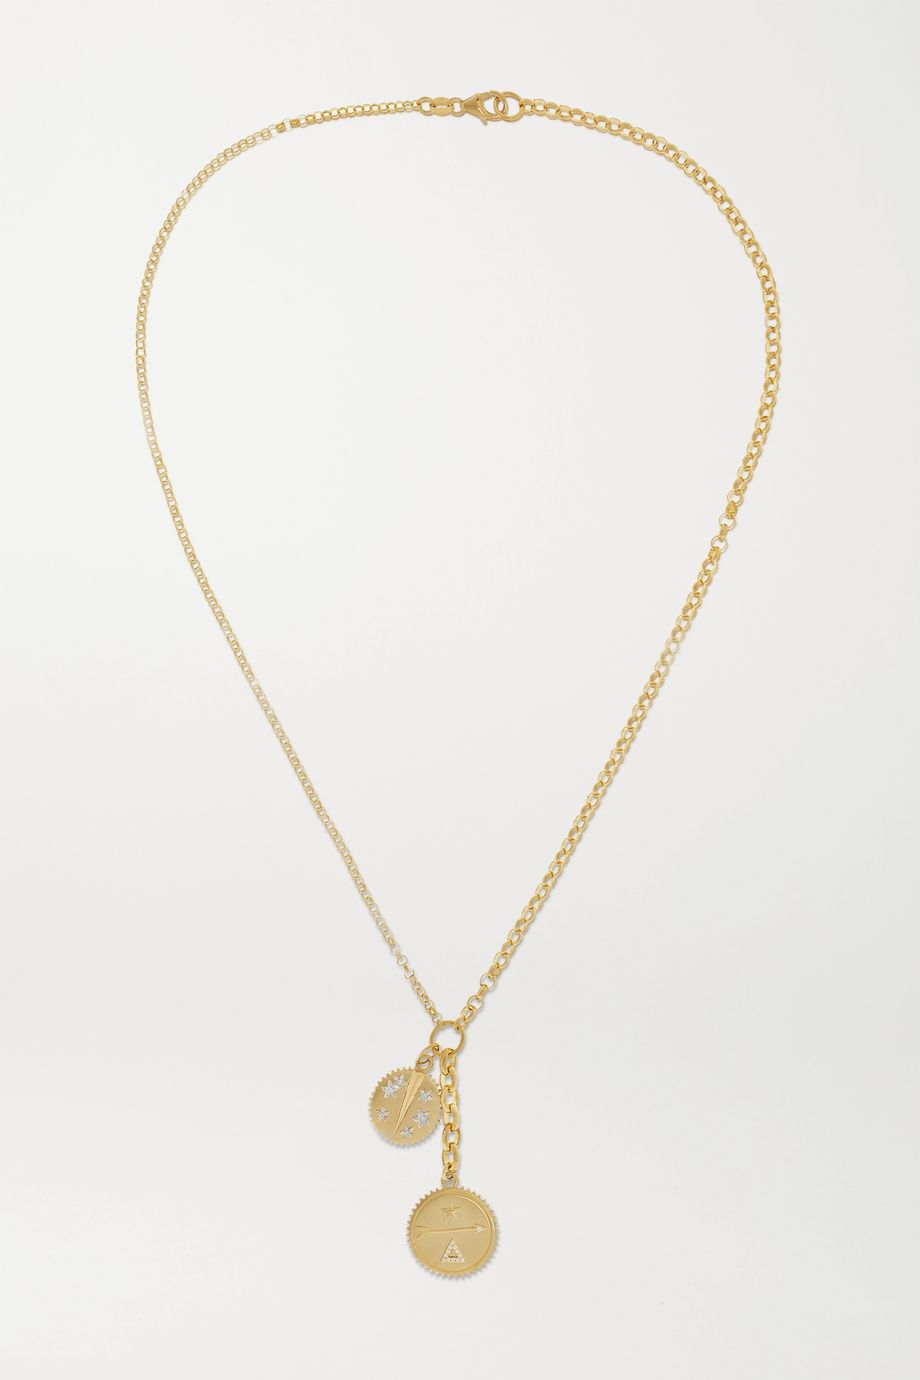 Foundrae Dream and Resilience 18-karat gold diamond necklace